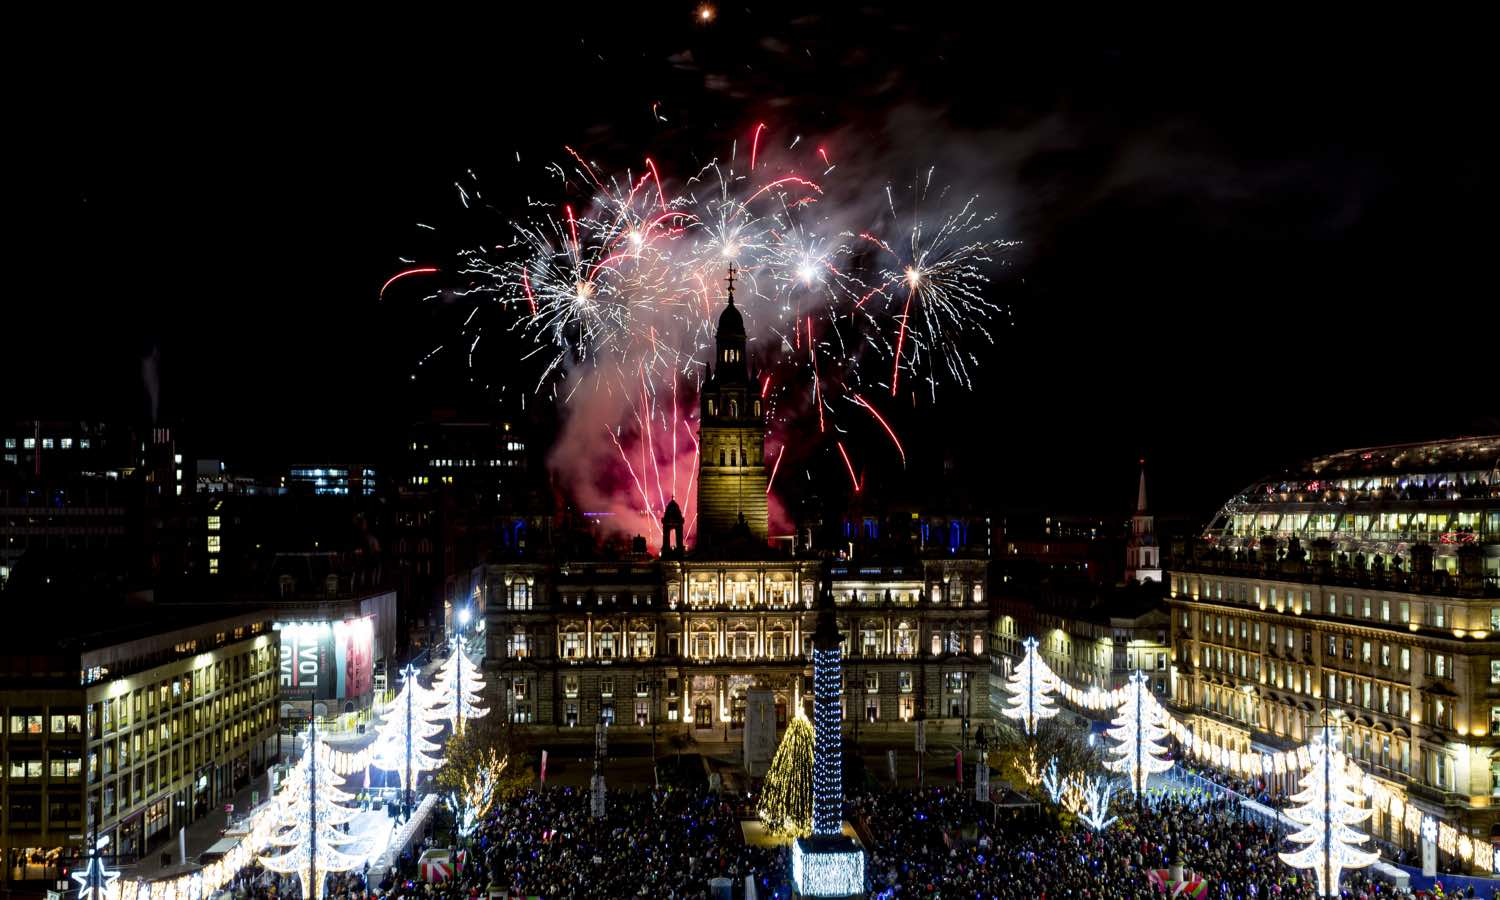 Let there be light- The Glasgow Christmas lights are now on!